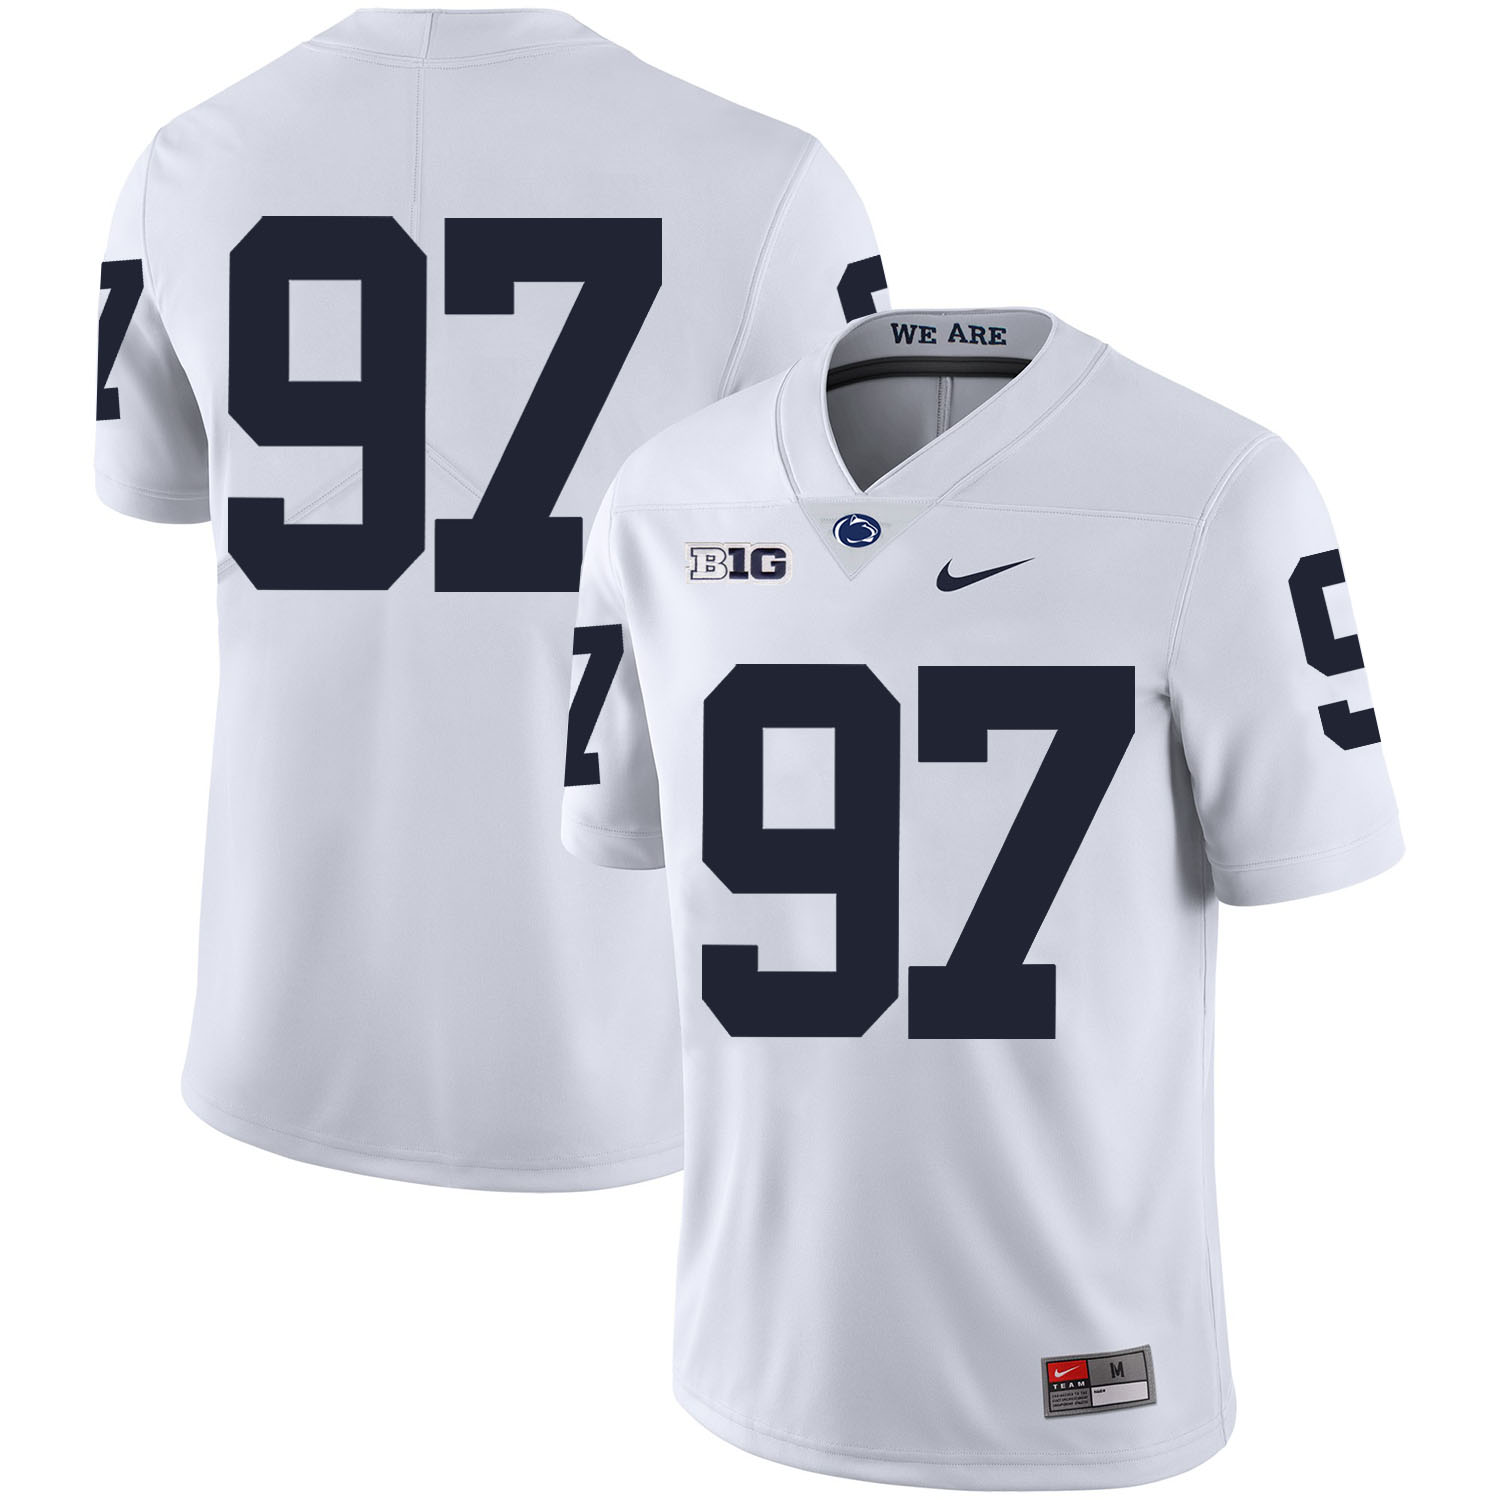 Penn State Nittany Lions 97 Sam Ficken White Nike College Football Jersey